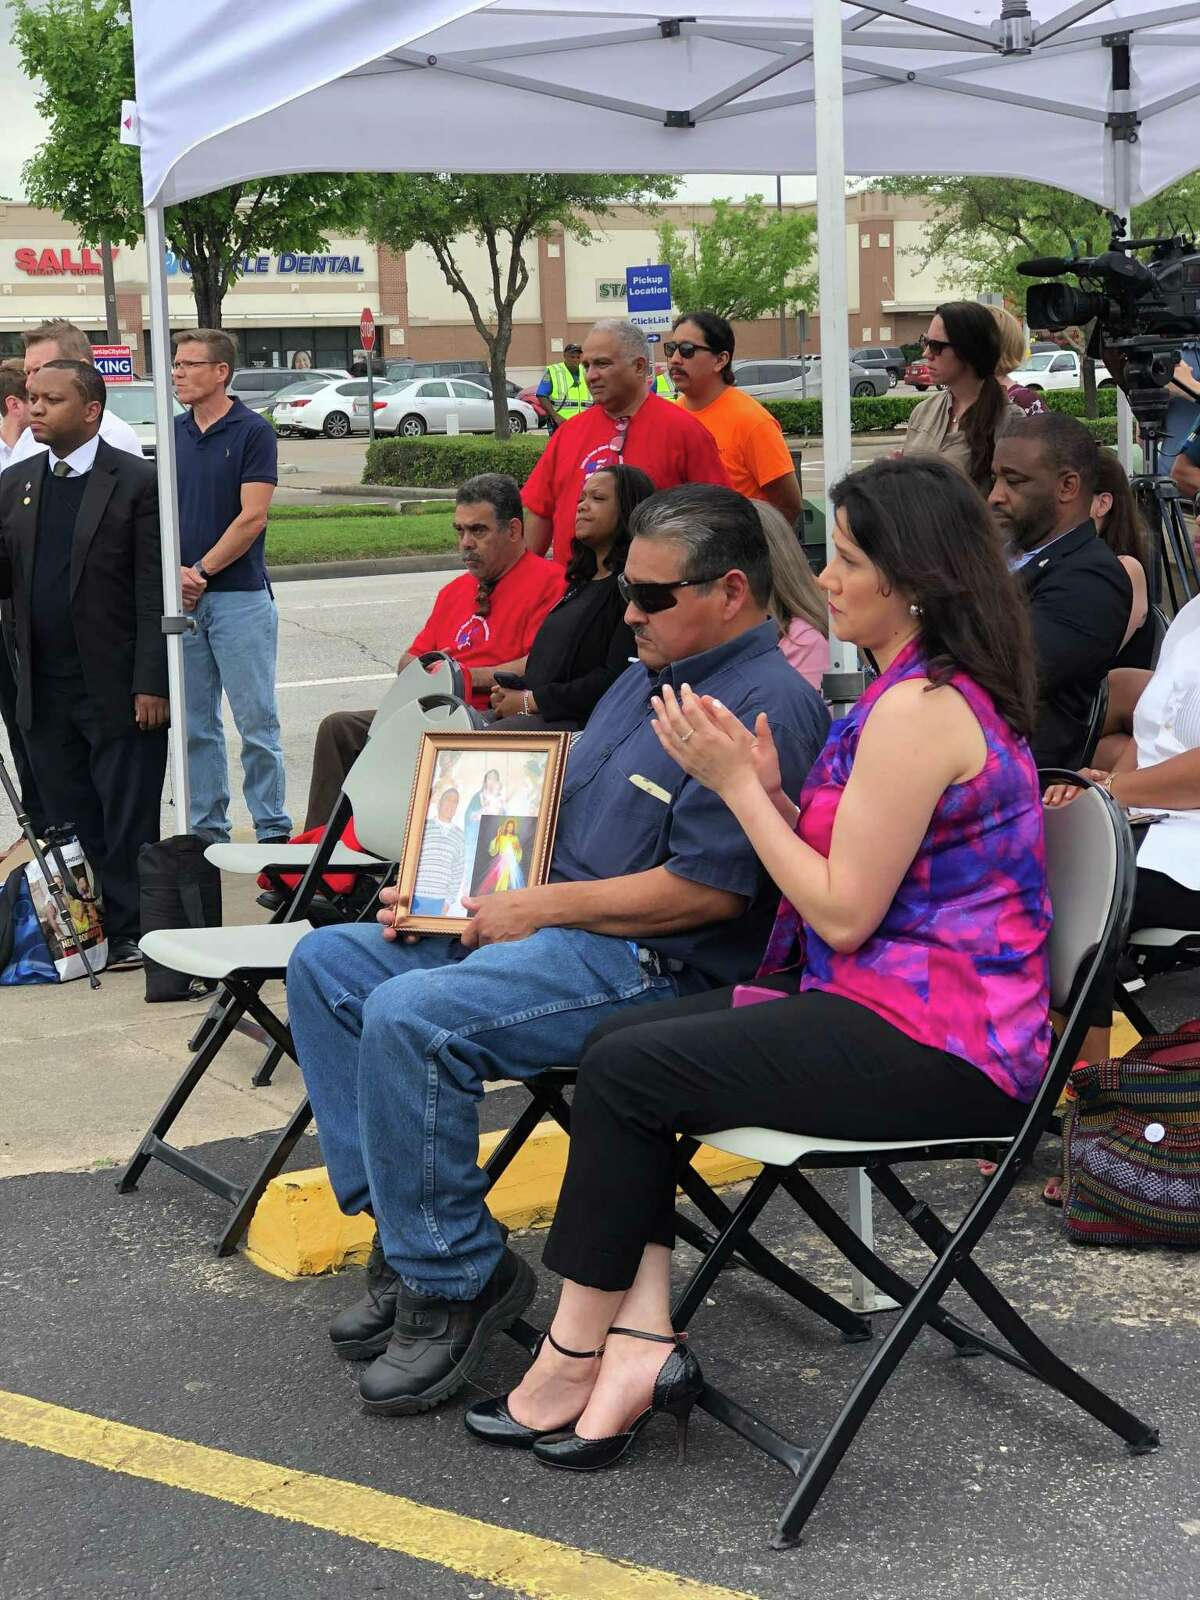 Dennis Perez holds a picture of his late brother, Jesus Perez, at a press conference on pedestrian safety improvements held by Houston Mayor Sylvester Turner on April 11, 2019. Perez, 63, and Lesha Adams, 55, were fatally struck by a car while crossing a busy street in the Greater Heights last month. Adams had stopped her SUV to help the wheelchair-bound Perez cross busy N. Shepherd Street.